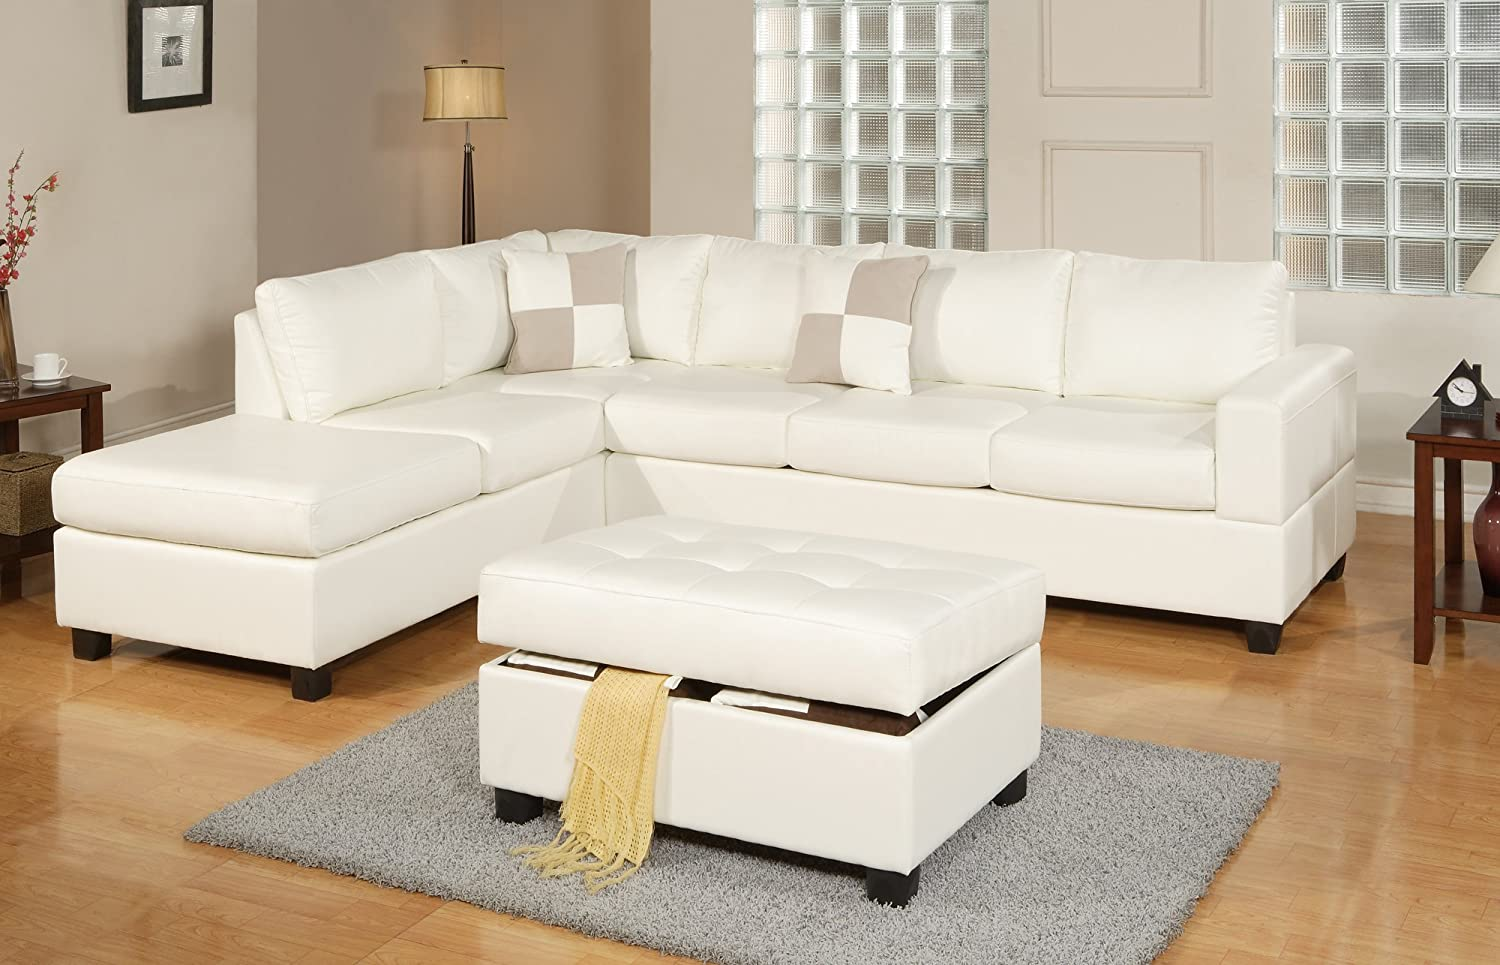 Amazon.com Bobkona Soft-touch Reversible Bonded Leather Match 3-Piece Sectional Sofa Set White Kitchen u0026 Dining : white leather sectional sofa with chaise - Sectionals, Sofas & Couches